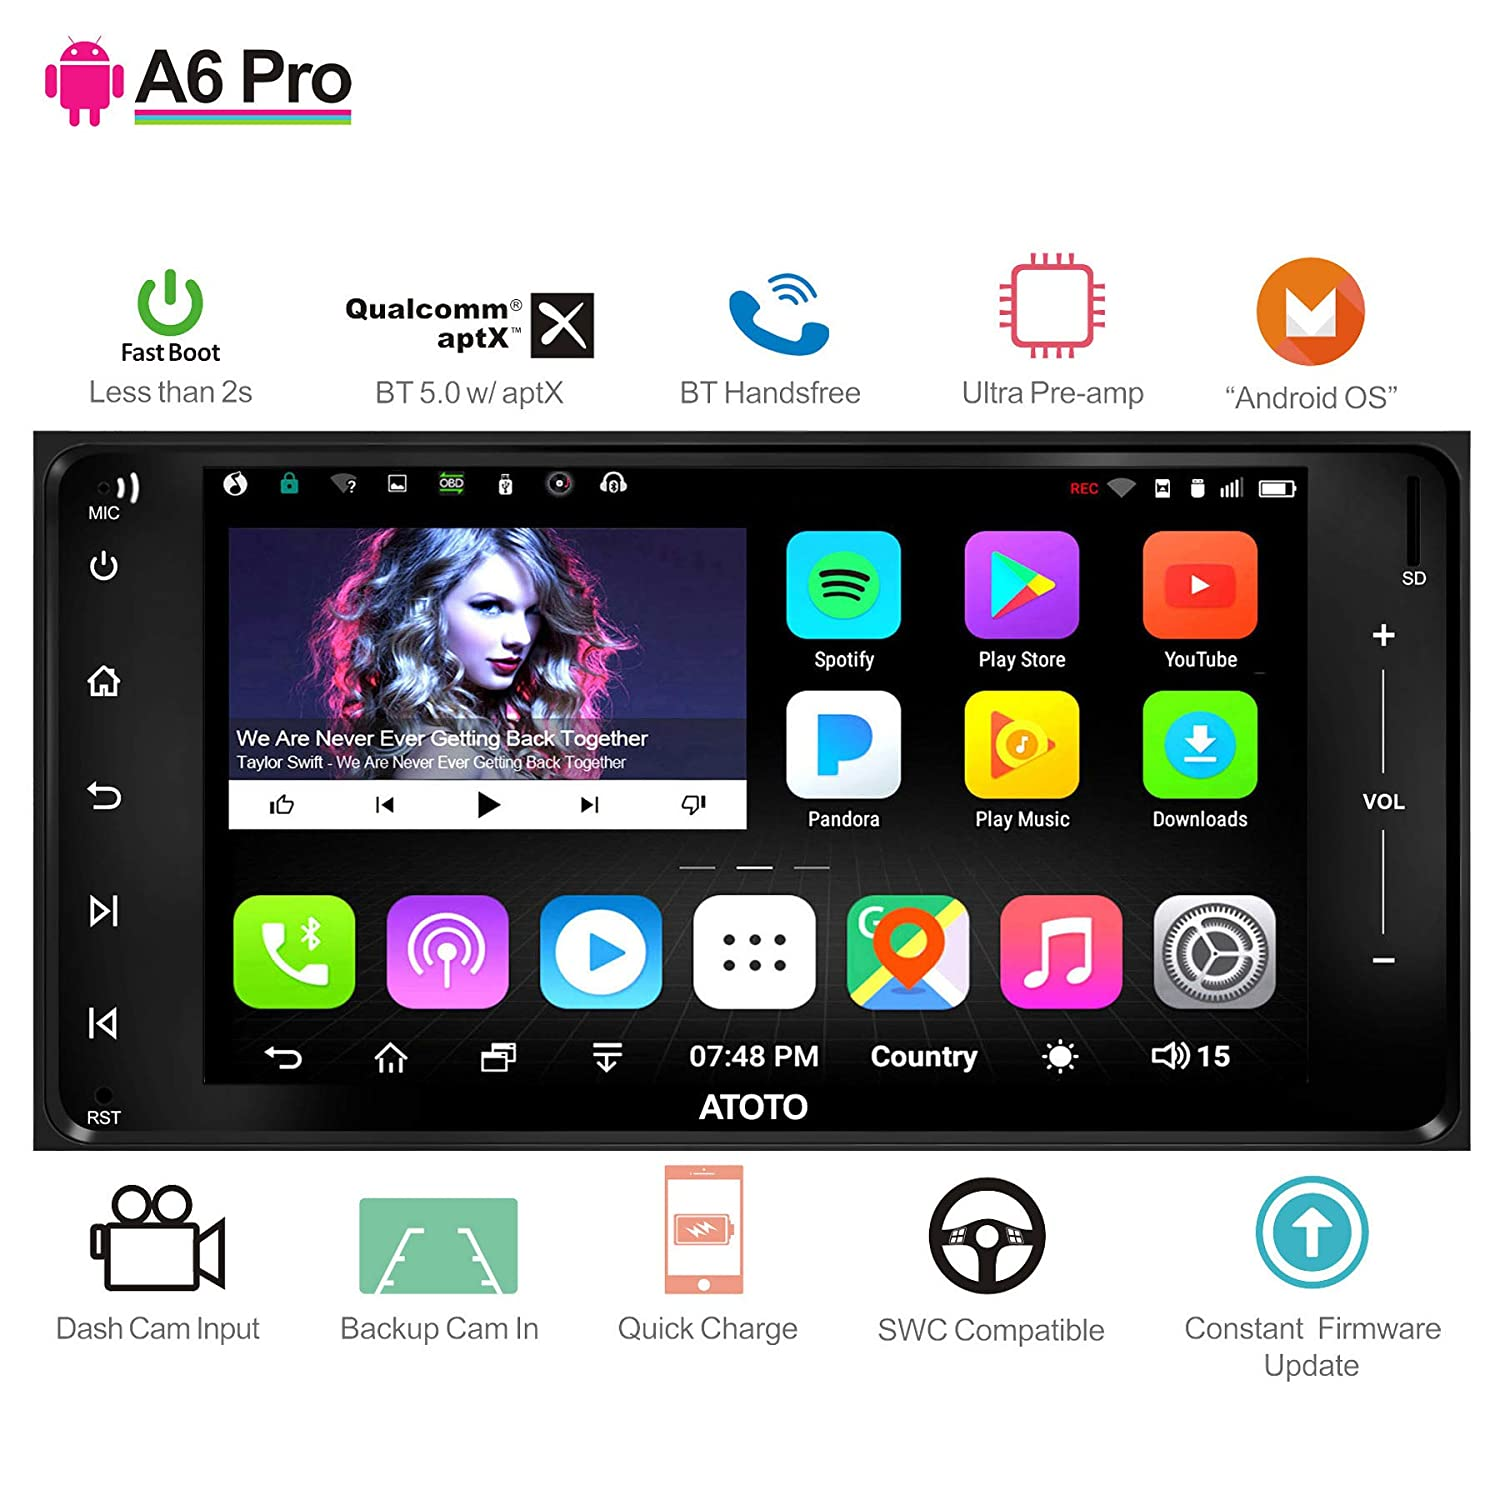 ATOTO A6 Pro A6Y2721PRB 2DIN Android Car Navigation Stereo Fast Phone Charge//Ultra Preamplifier in Dash Entertainment Multimedia Radio,WiFi,Support 256G SD /&More Dual Bluetooth w//aptX